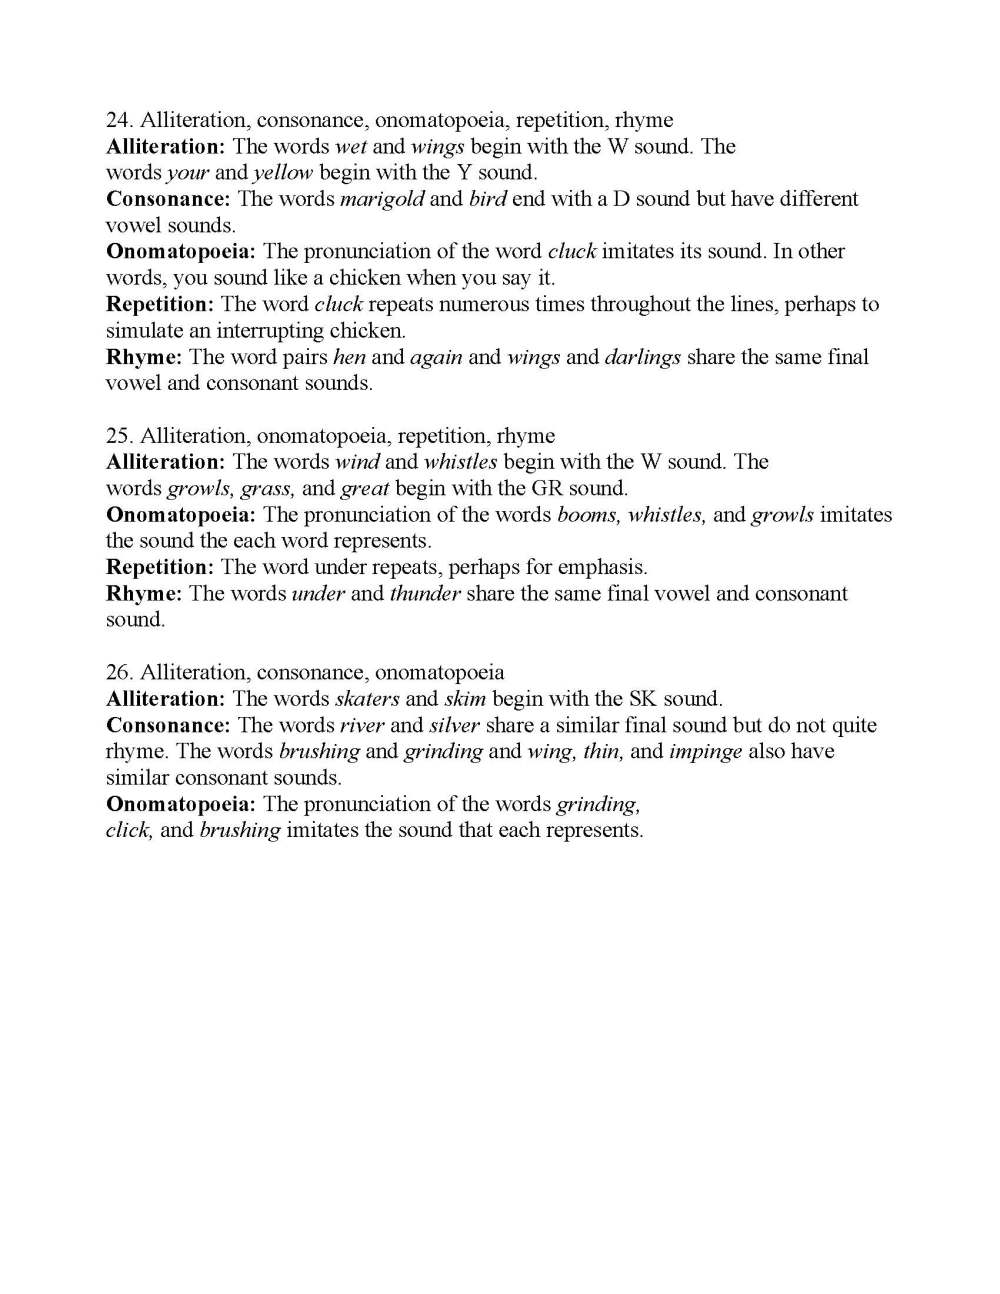 medium resolution of Sound Devices In Poetry Worksheet - Promotiontablecovers